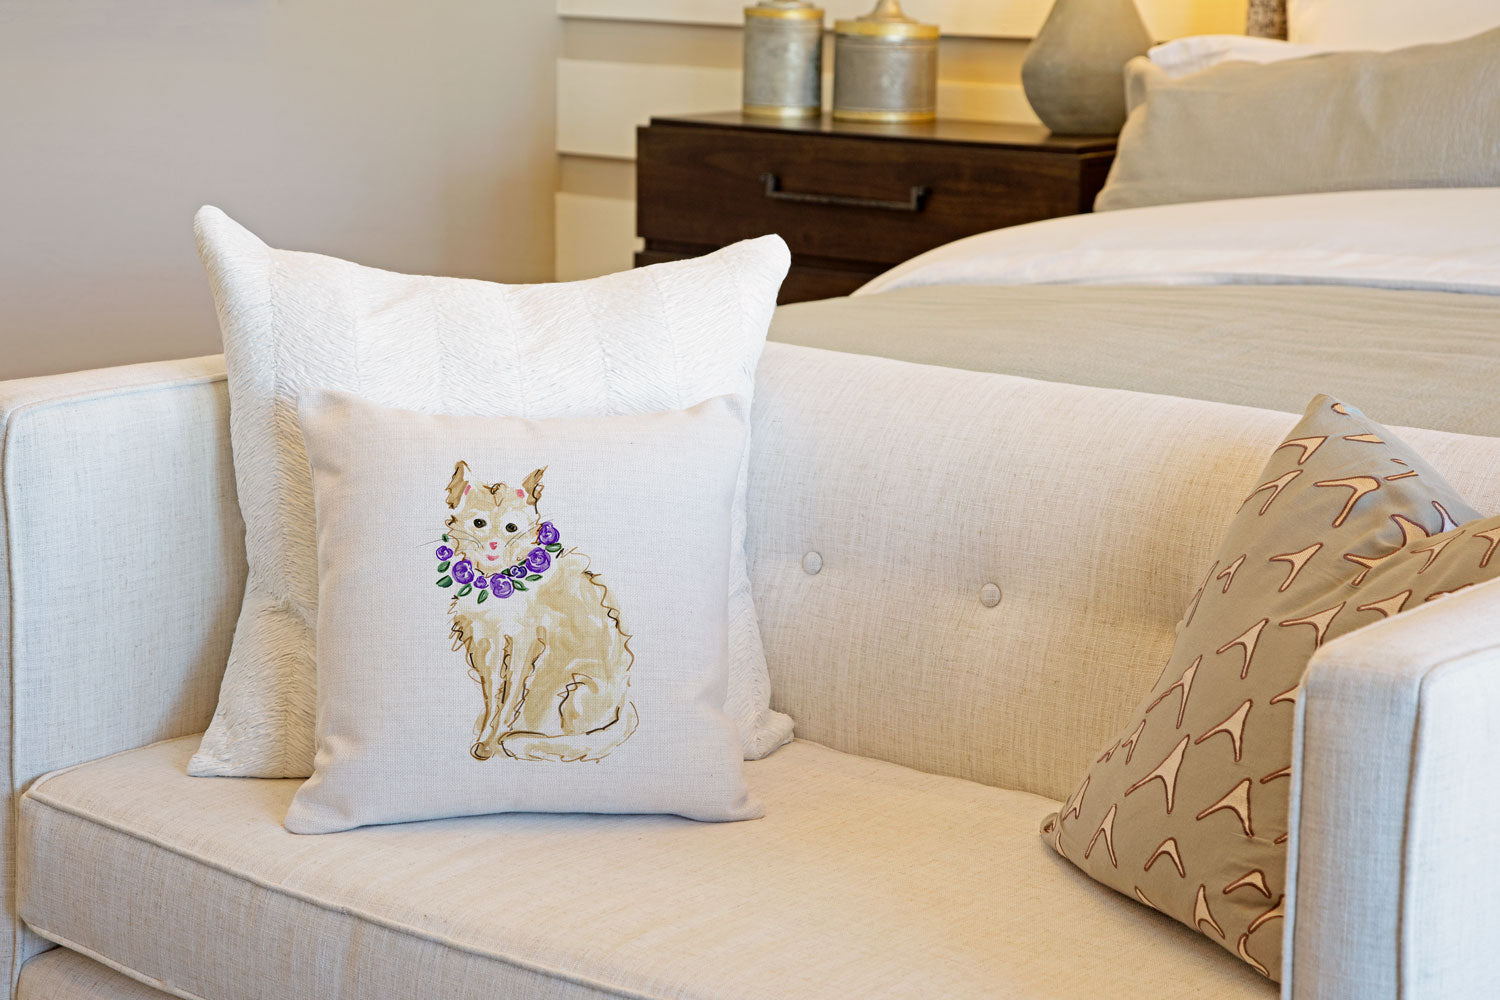 Ginger Cat Throw Pillow Cover - Cat Illustration Throw Pillow Cover Collection-Di Lewis